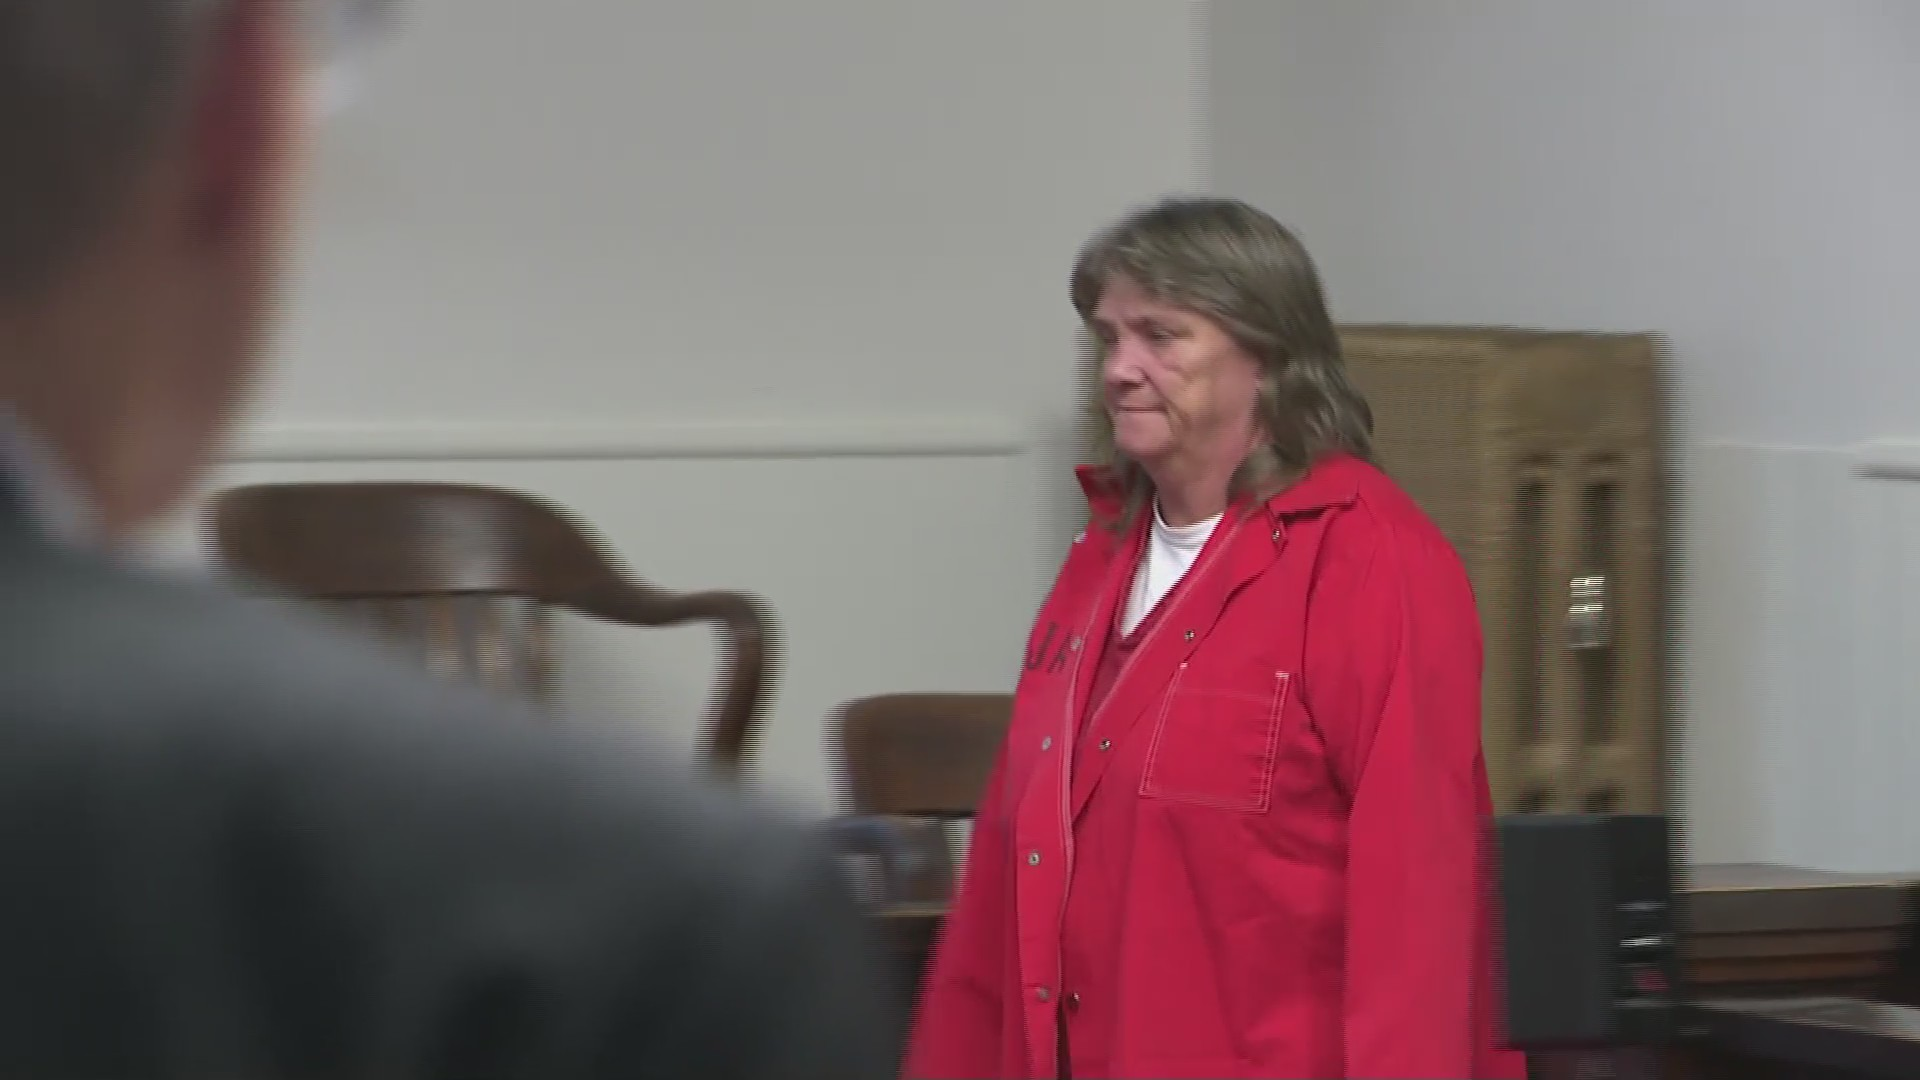 Rita_Newcomb_appears_in_court_0_20181115194203